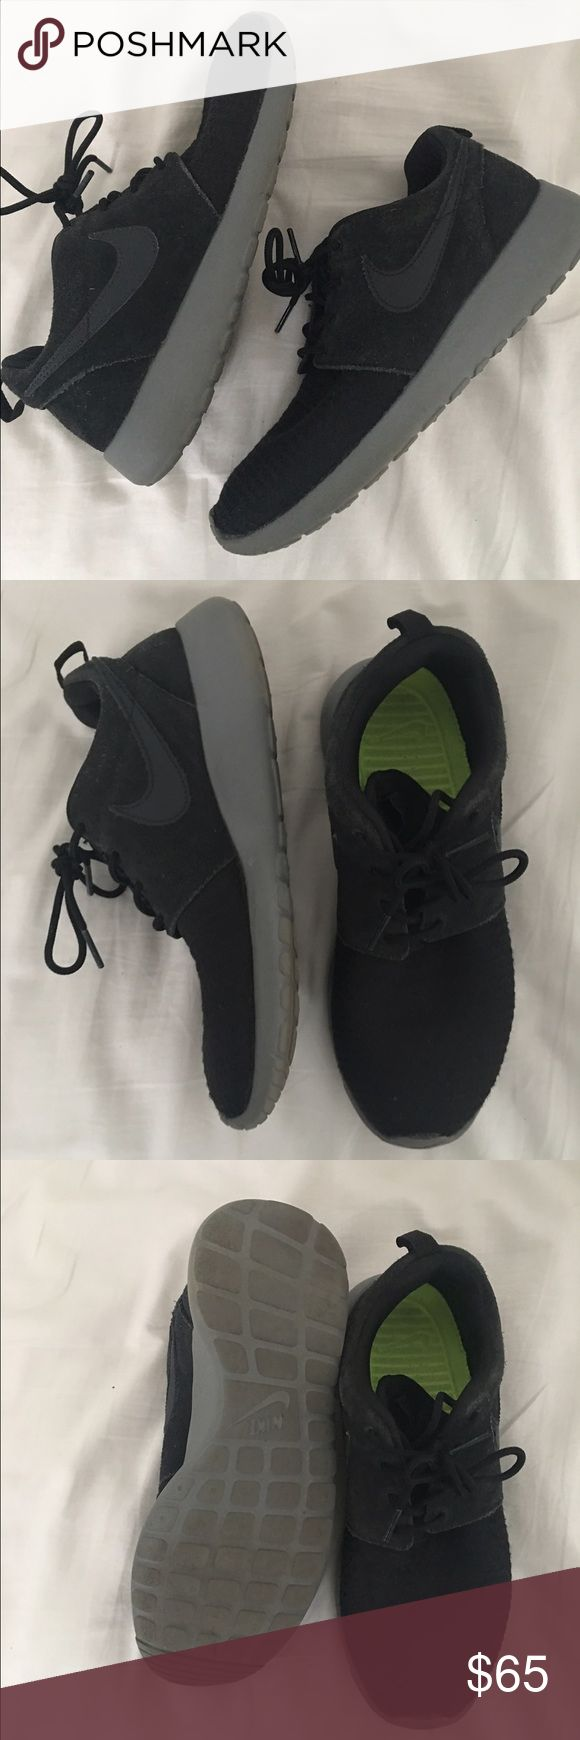 Size 6 like new custom Nike roshe runs! Custom made, like new, Nike roshe runs. These are gray bottom with black top. Top is half suede material. Inspired by Kim kardashian as shown in photos. Let me know if you have any questions! Nike Shoes Sneakers